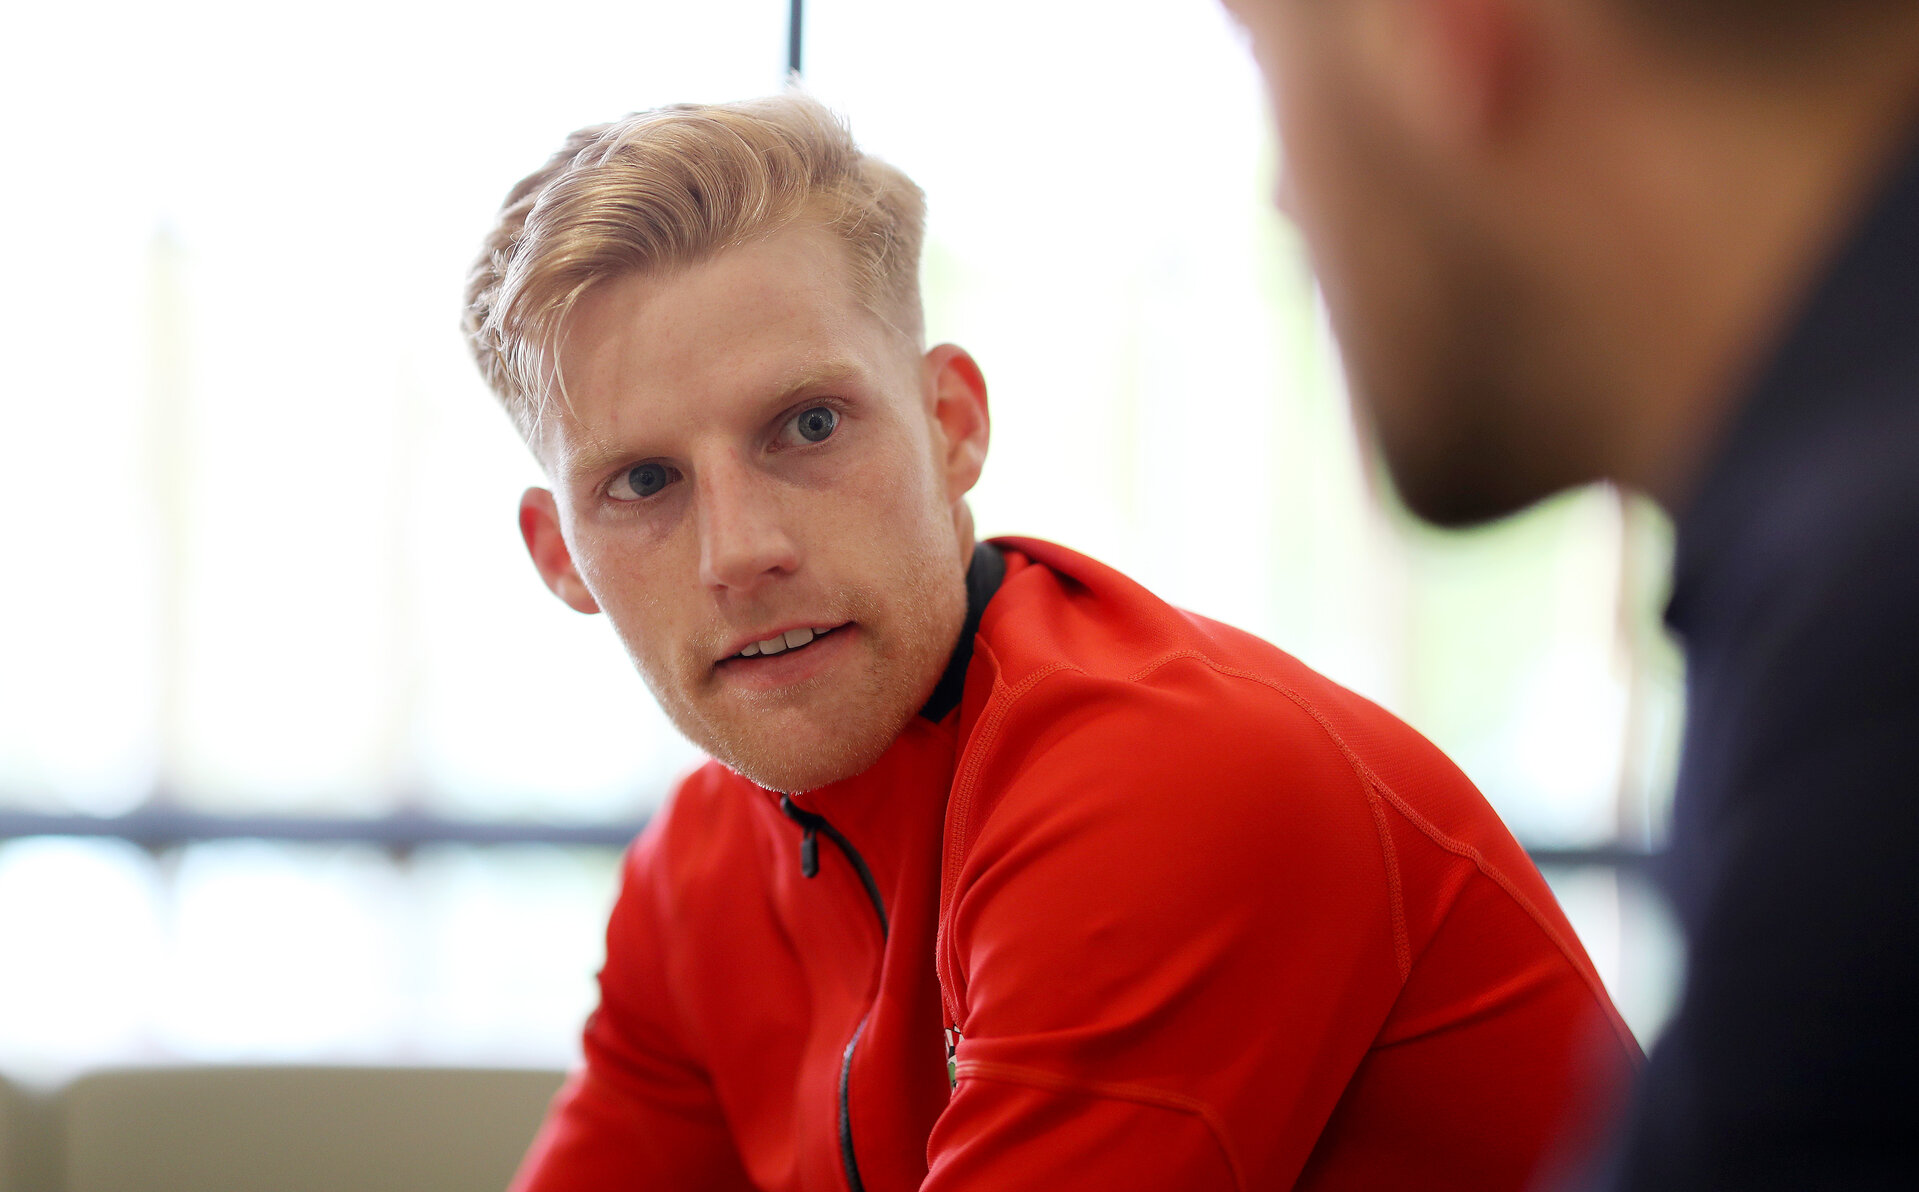 SOUTHAMPTON, ENGLAND - APRIL 24: Josh Sims during a photoshoot for the Southampton FC match day magazine at the Staplewood Campus on April 24, 2019 in Southampton, England. (Photo by Matt Watson/Southampton FC via Getty Images)